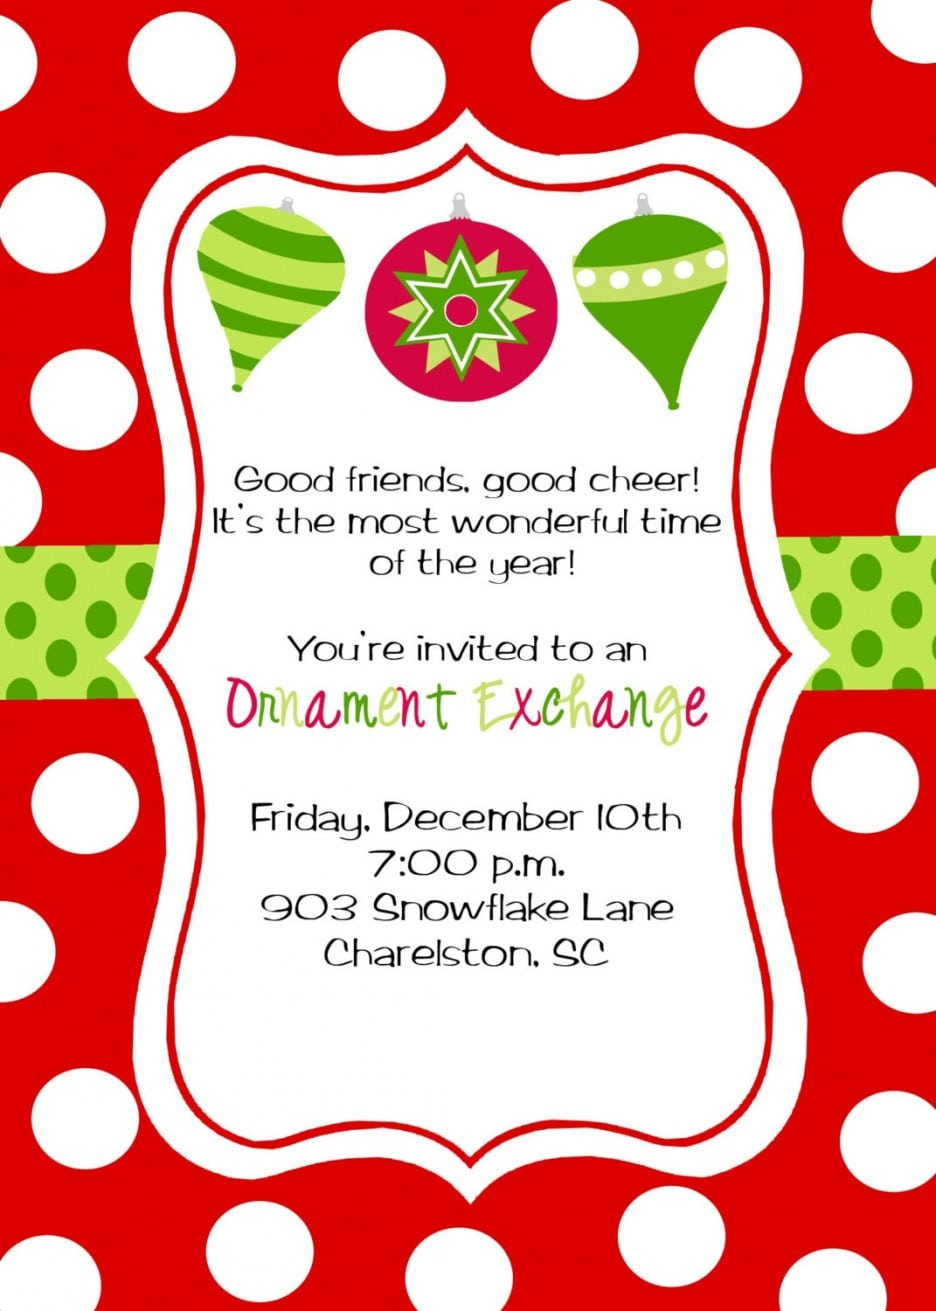 or nt exchange party invitations mickey mouse invitations wonderful christmas party invitations wording or nt